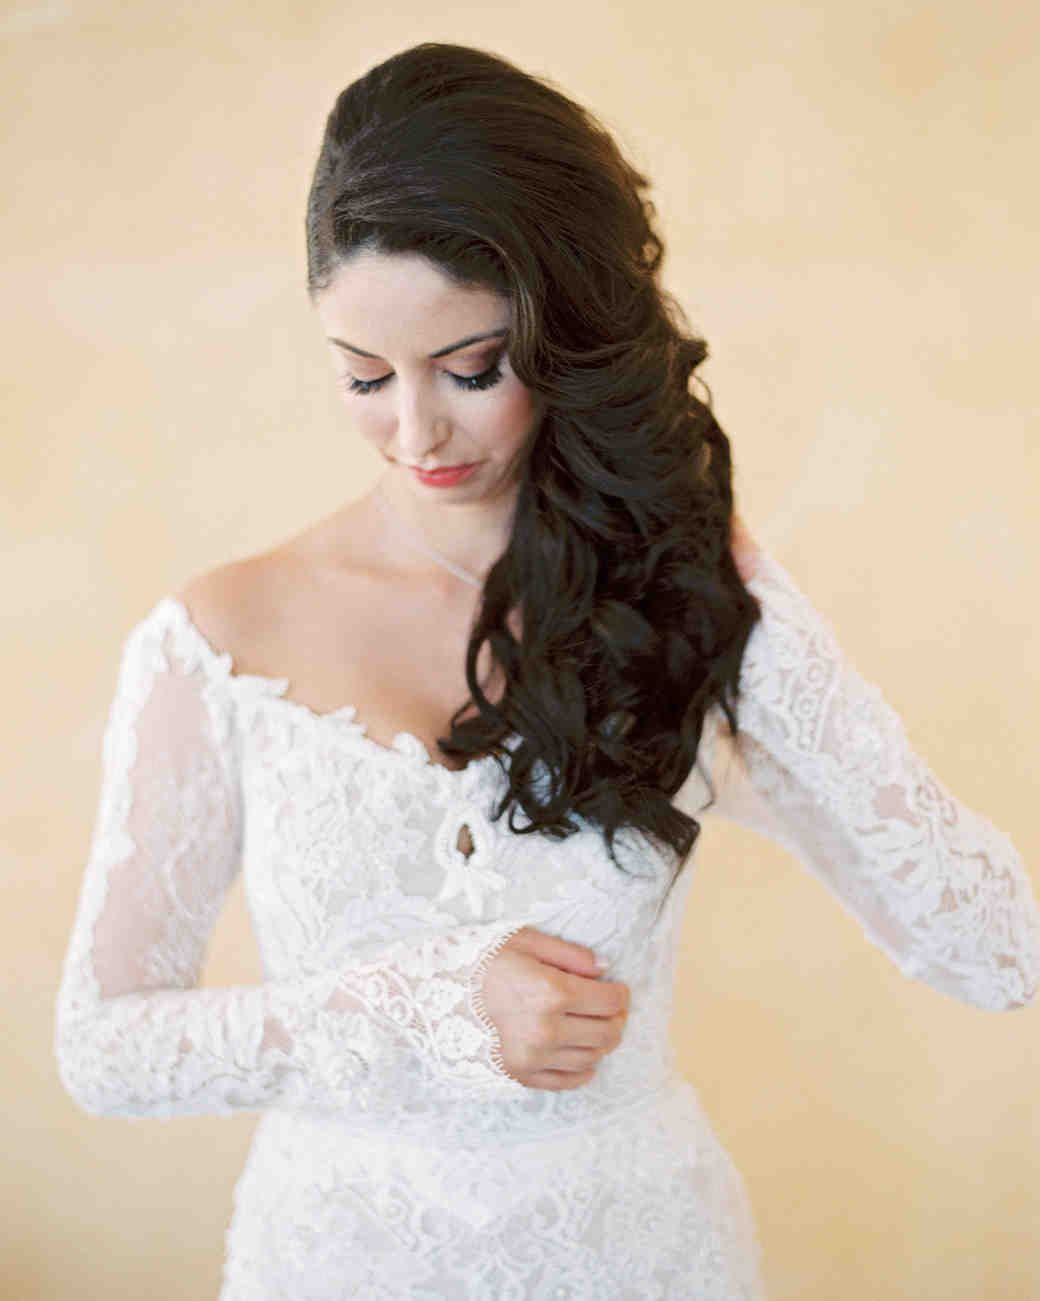 The Best Hairstyles For Every Wedding Dress Neckline Hairstyles For Gowns Wedding Dress Necklines Necklines For Dresses